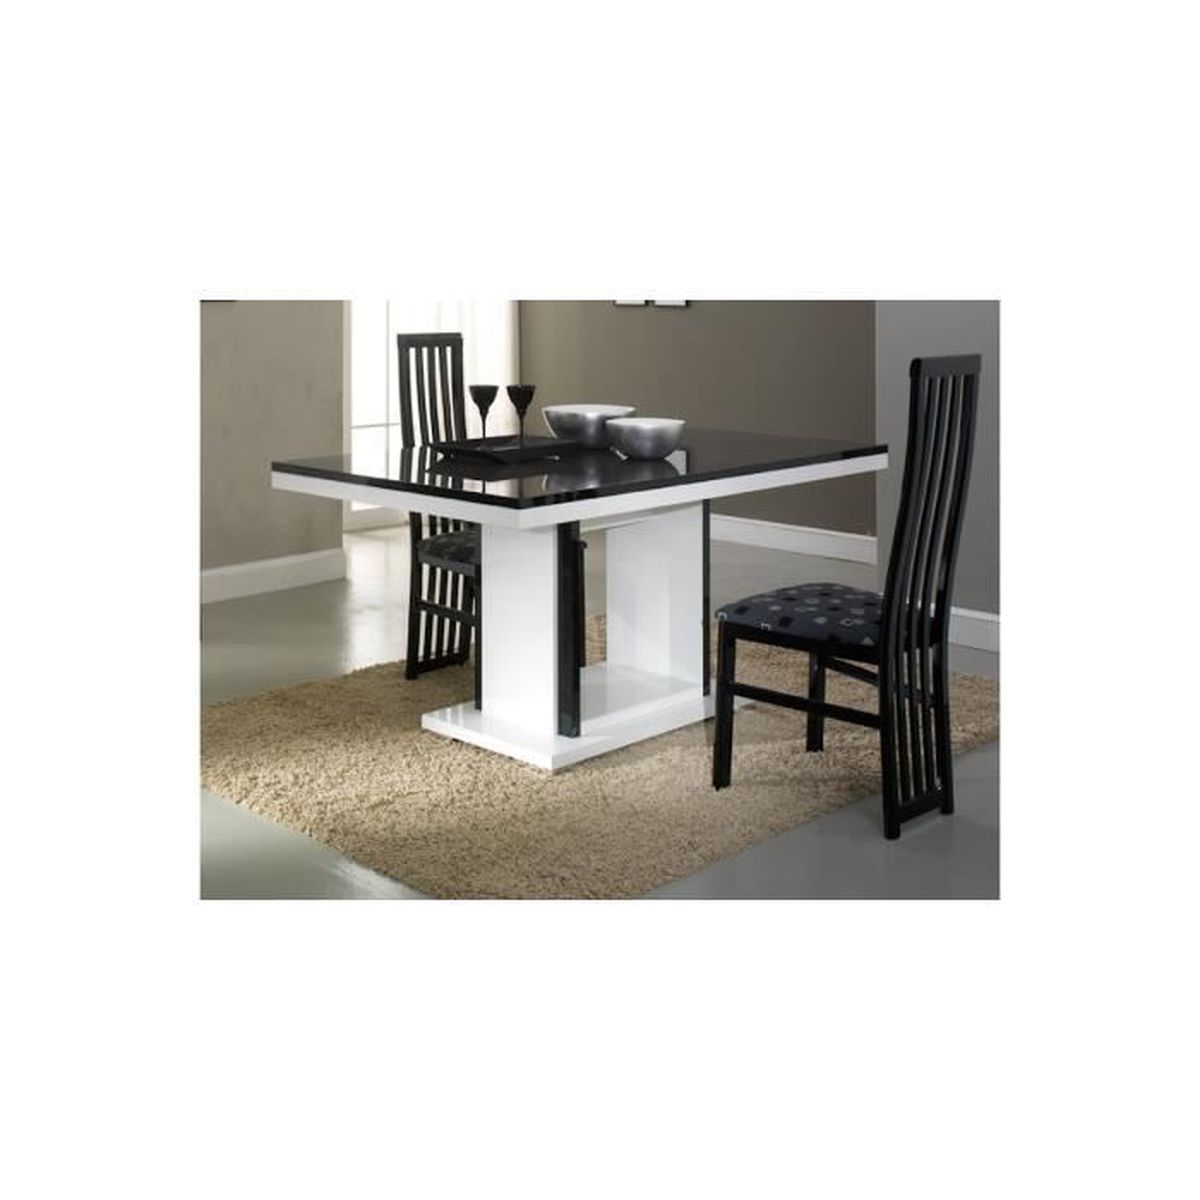 Table rectangulaire pied central achat vente table for Table rectangulaire pied central